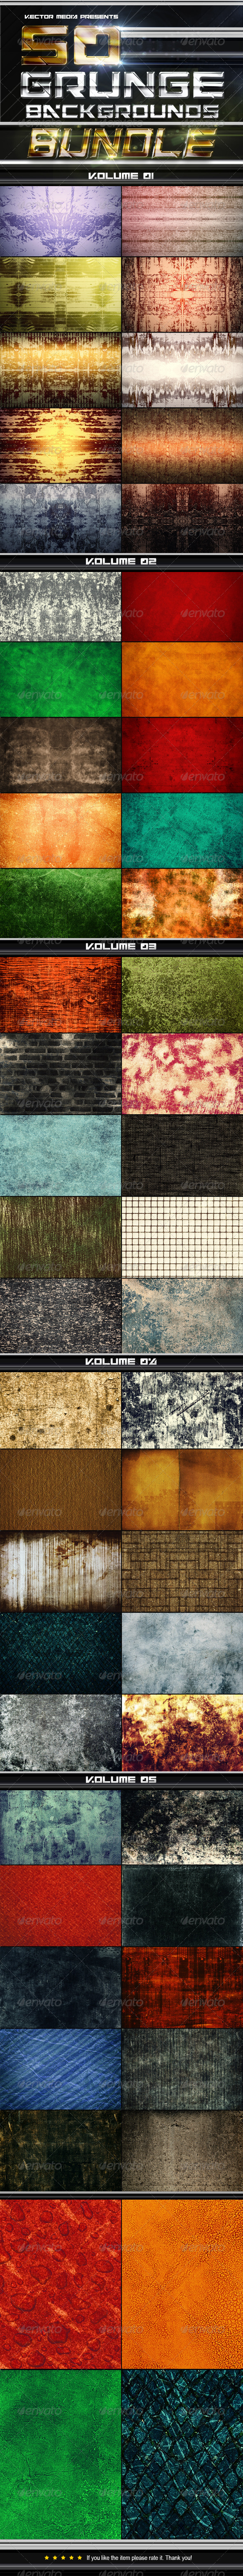 50 Grunge Backgrounds - Bundle - Miscellaneous Backgrounds